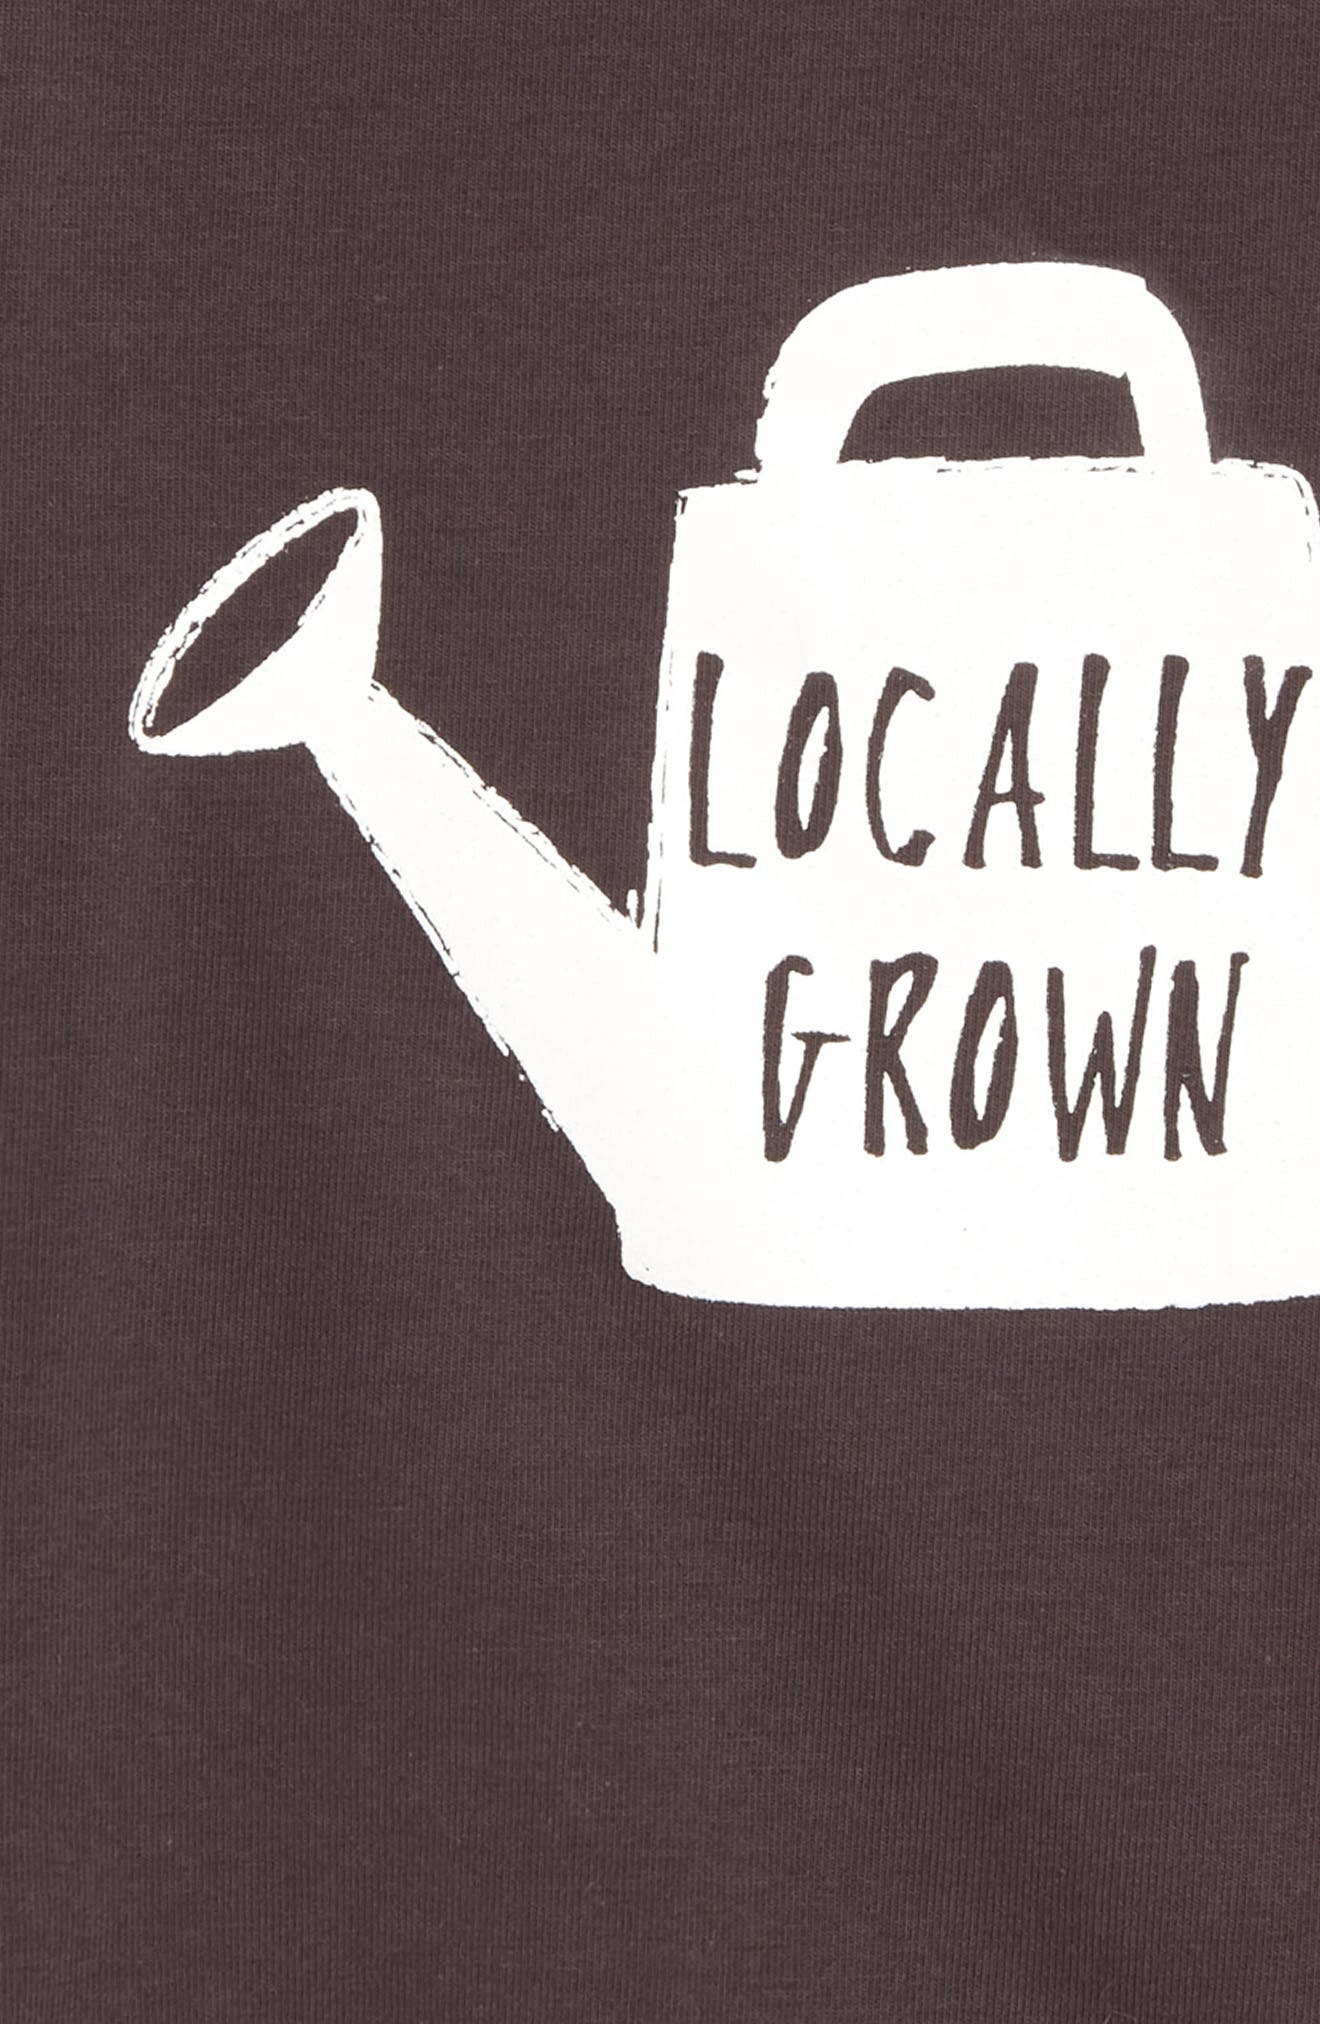 Locally Grown Graphic T-Shirt,                             Alternate thumbnail 2, color,                             021